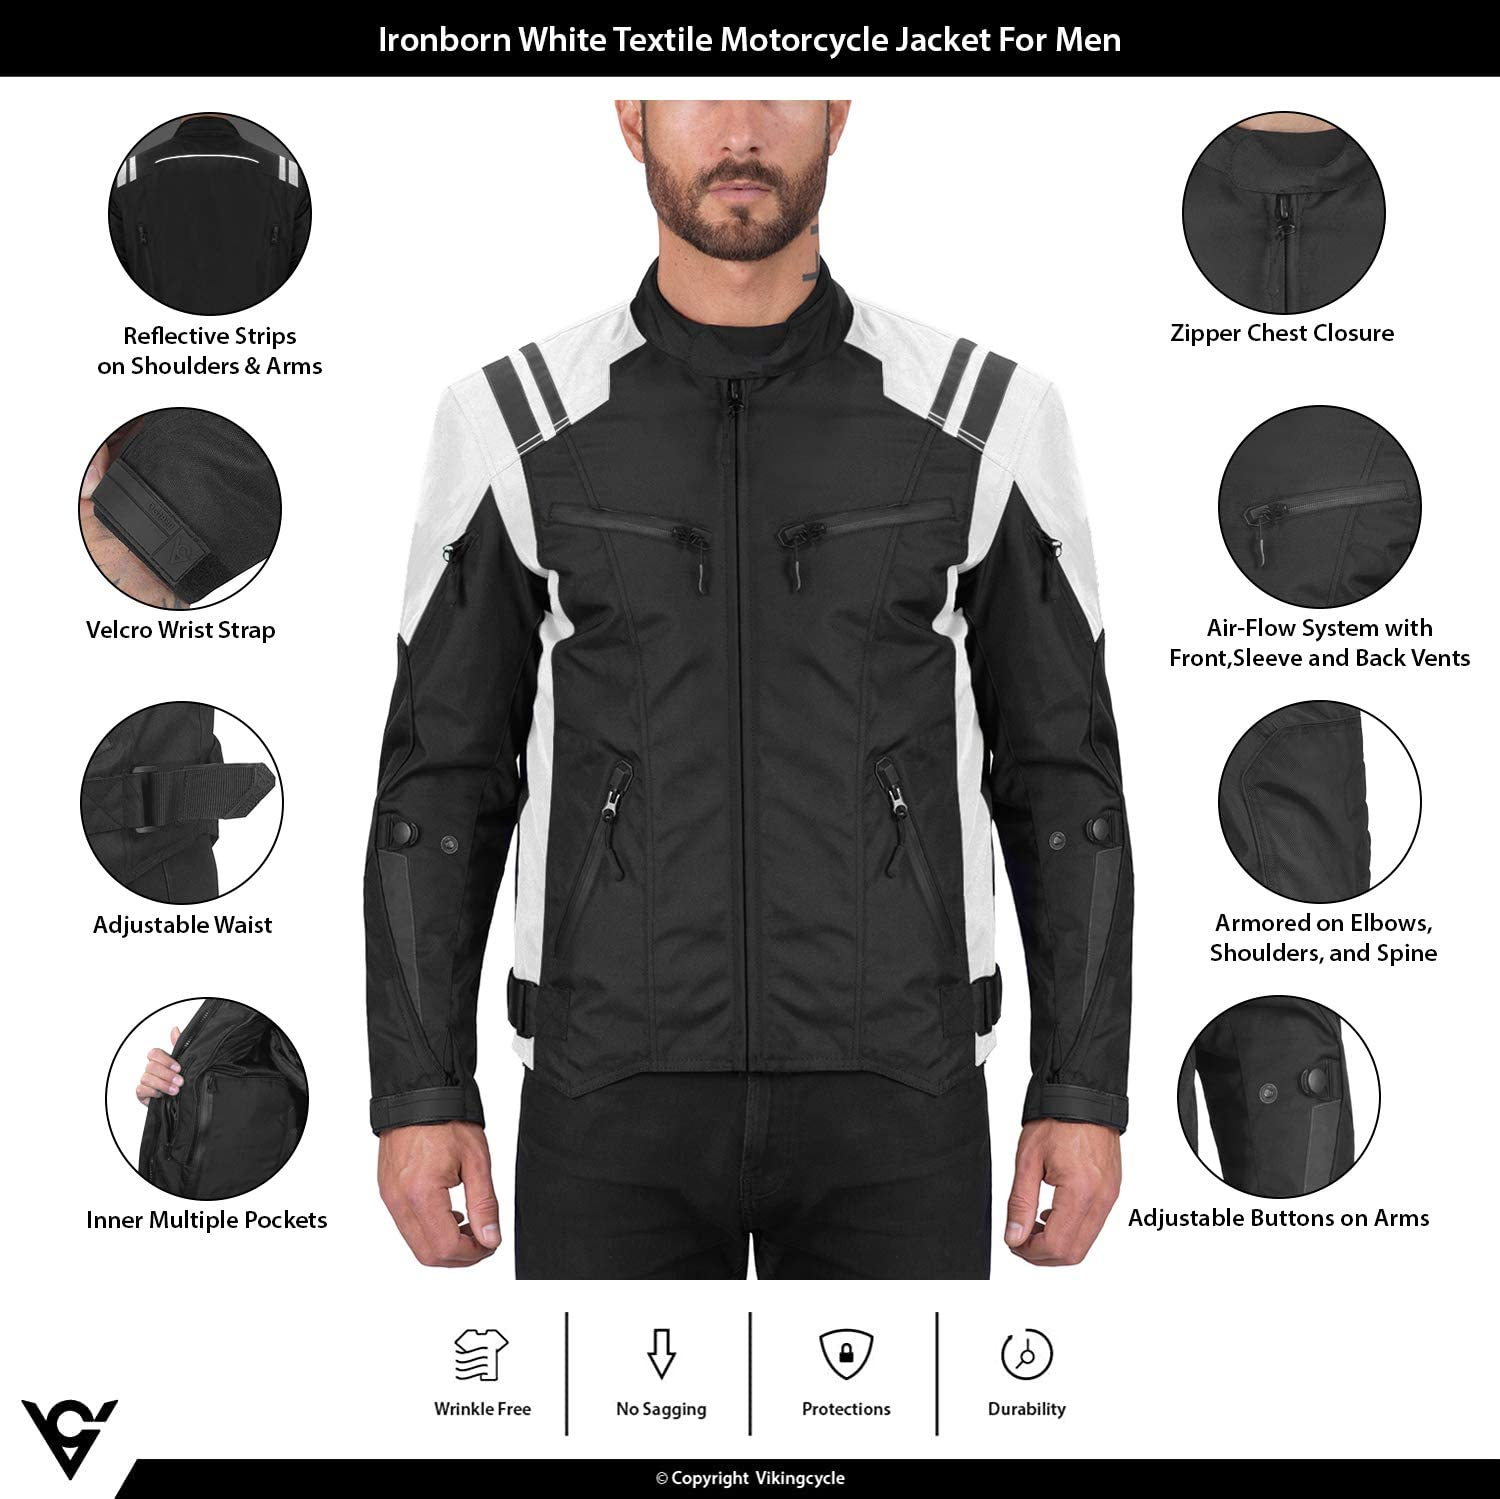 Viking Cycle Ironborn Protective Textile Motorcycle Jacket for Men Breathable Waterproof CE Approved Armor for Bikers White, XXXX-Large